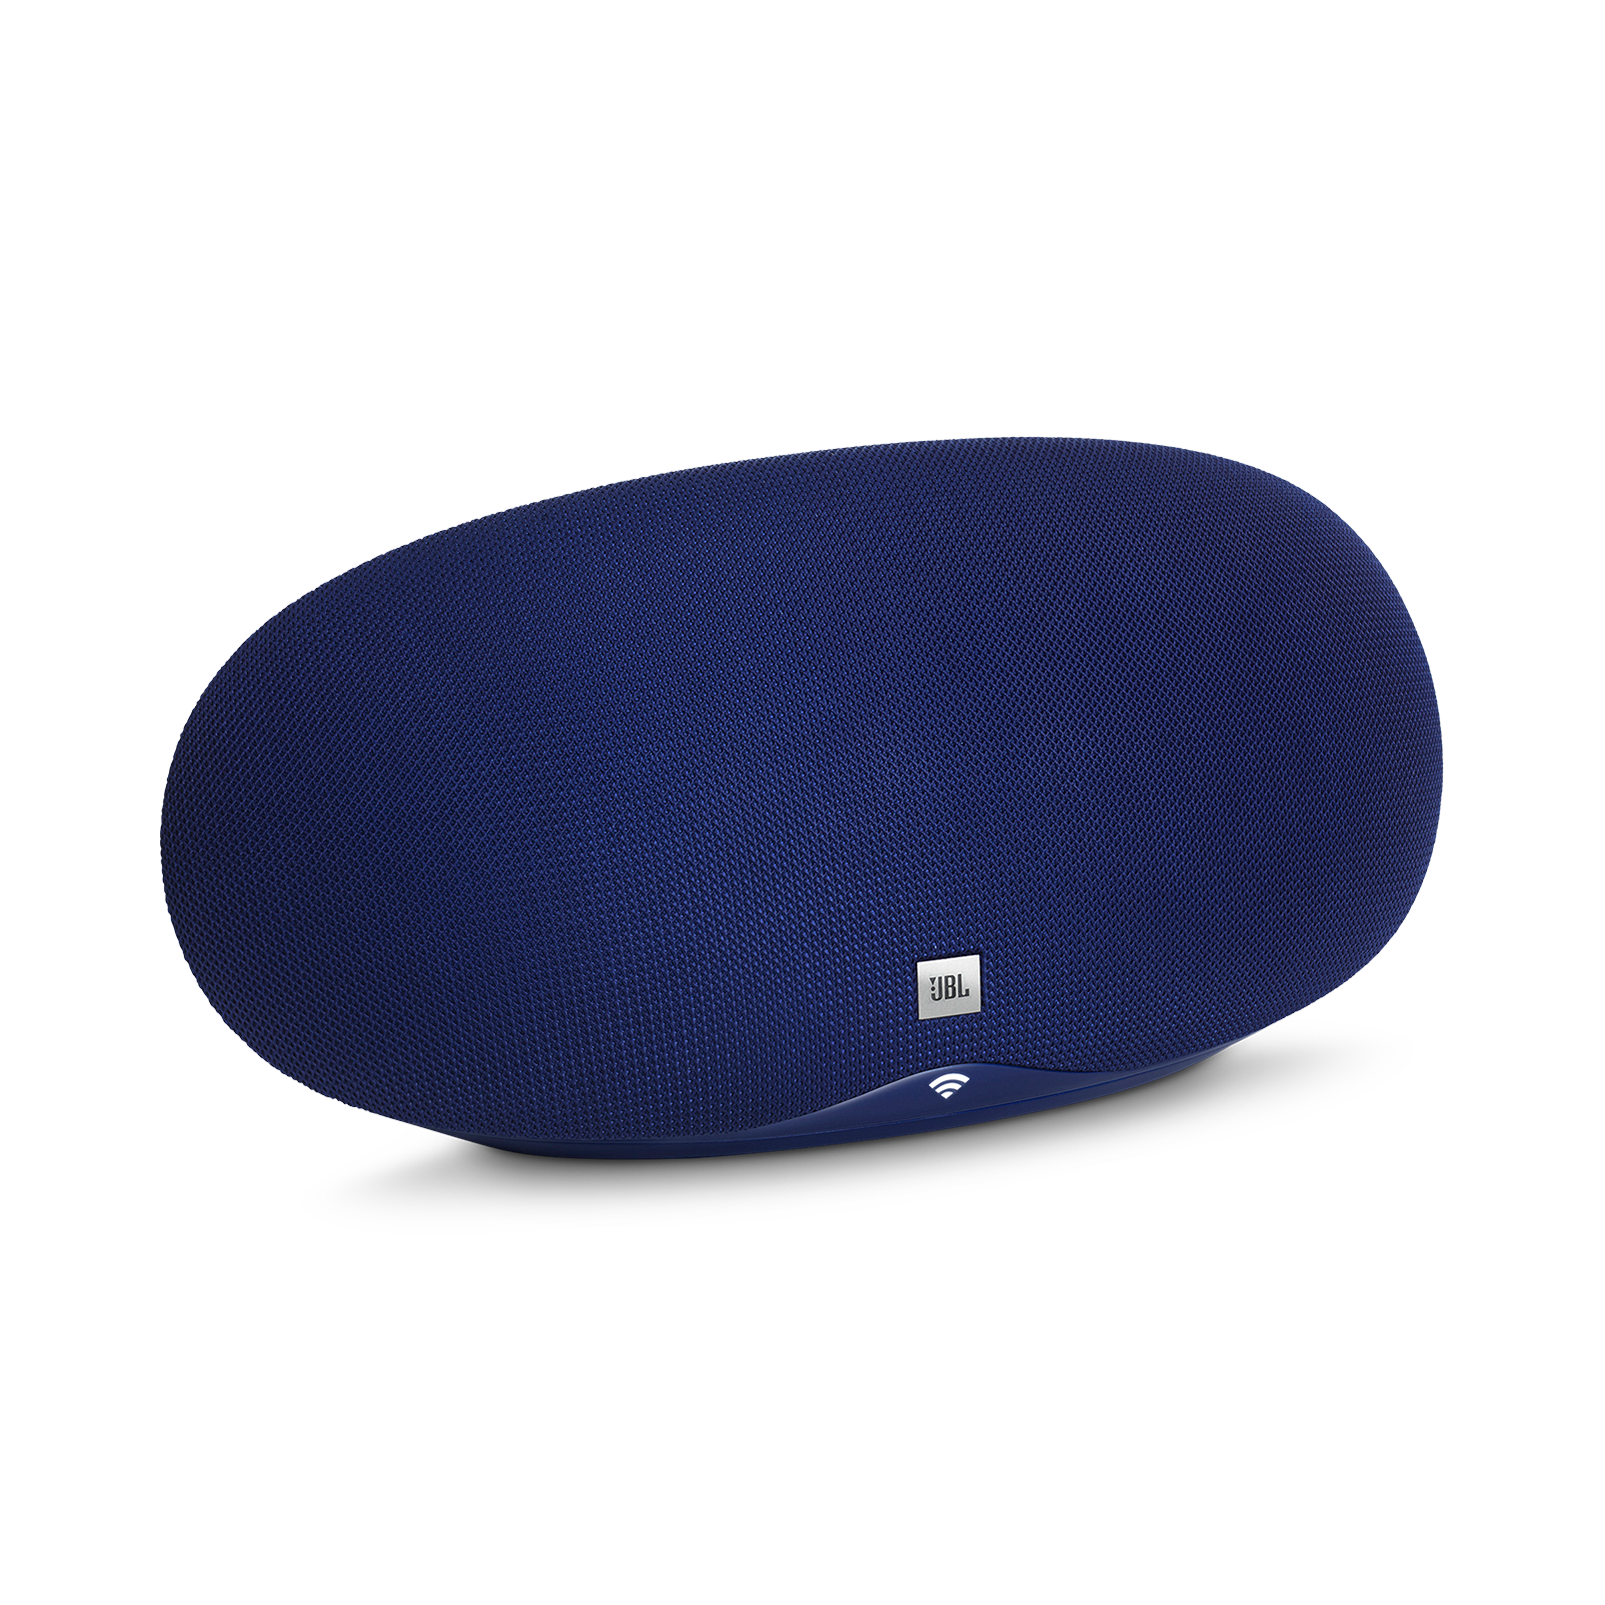 JBL Playlist - Blue - Wireless speaker with Chromecast built-in - Hero